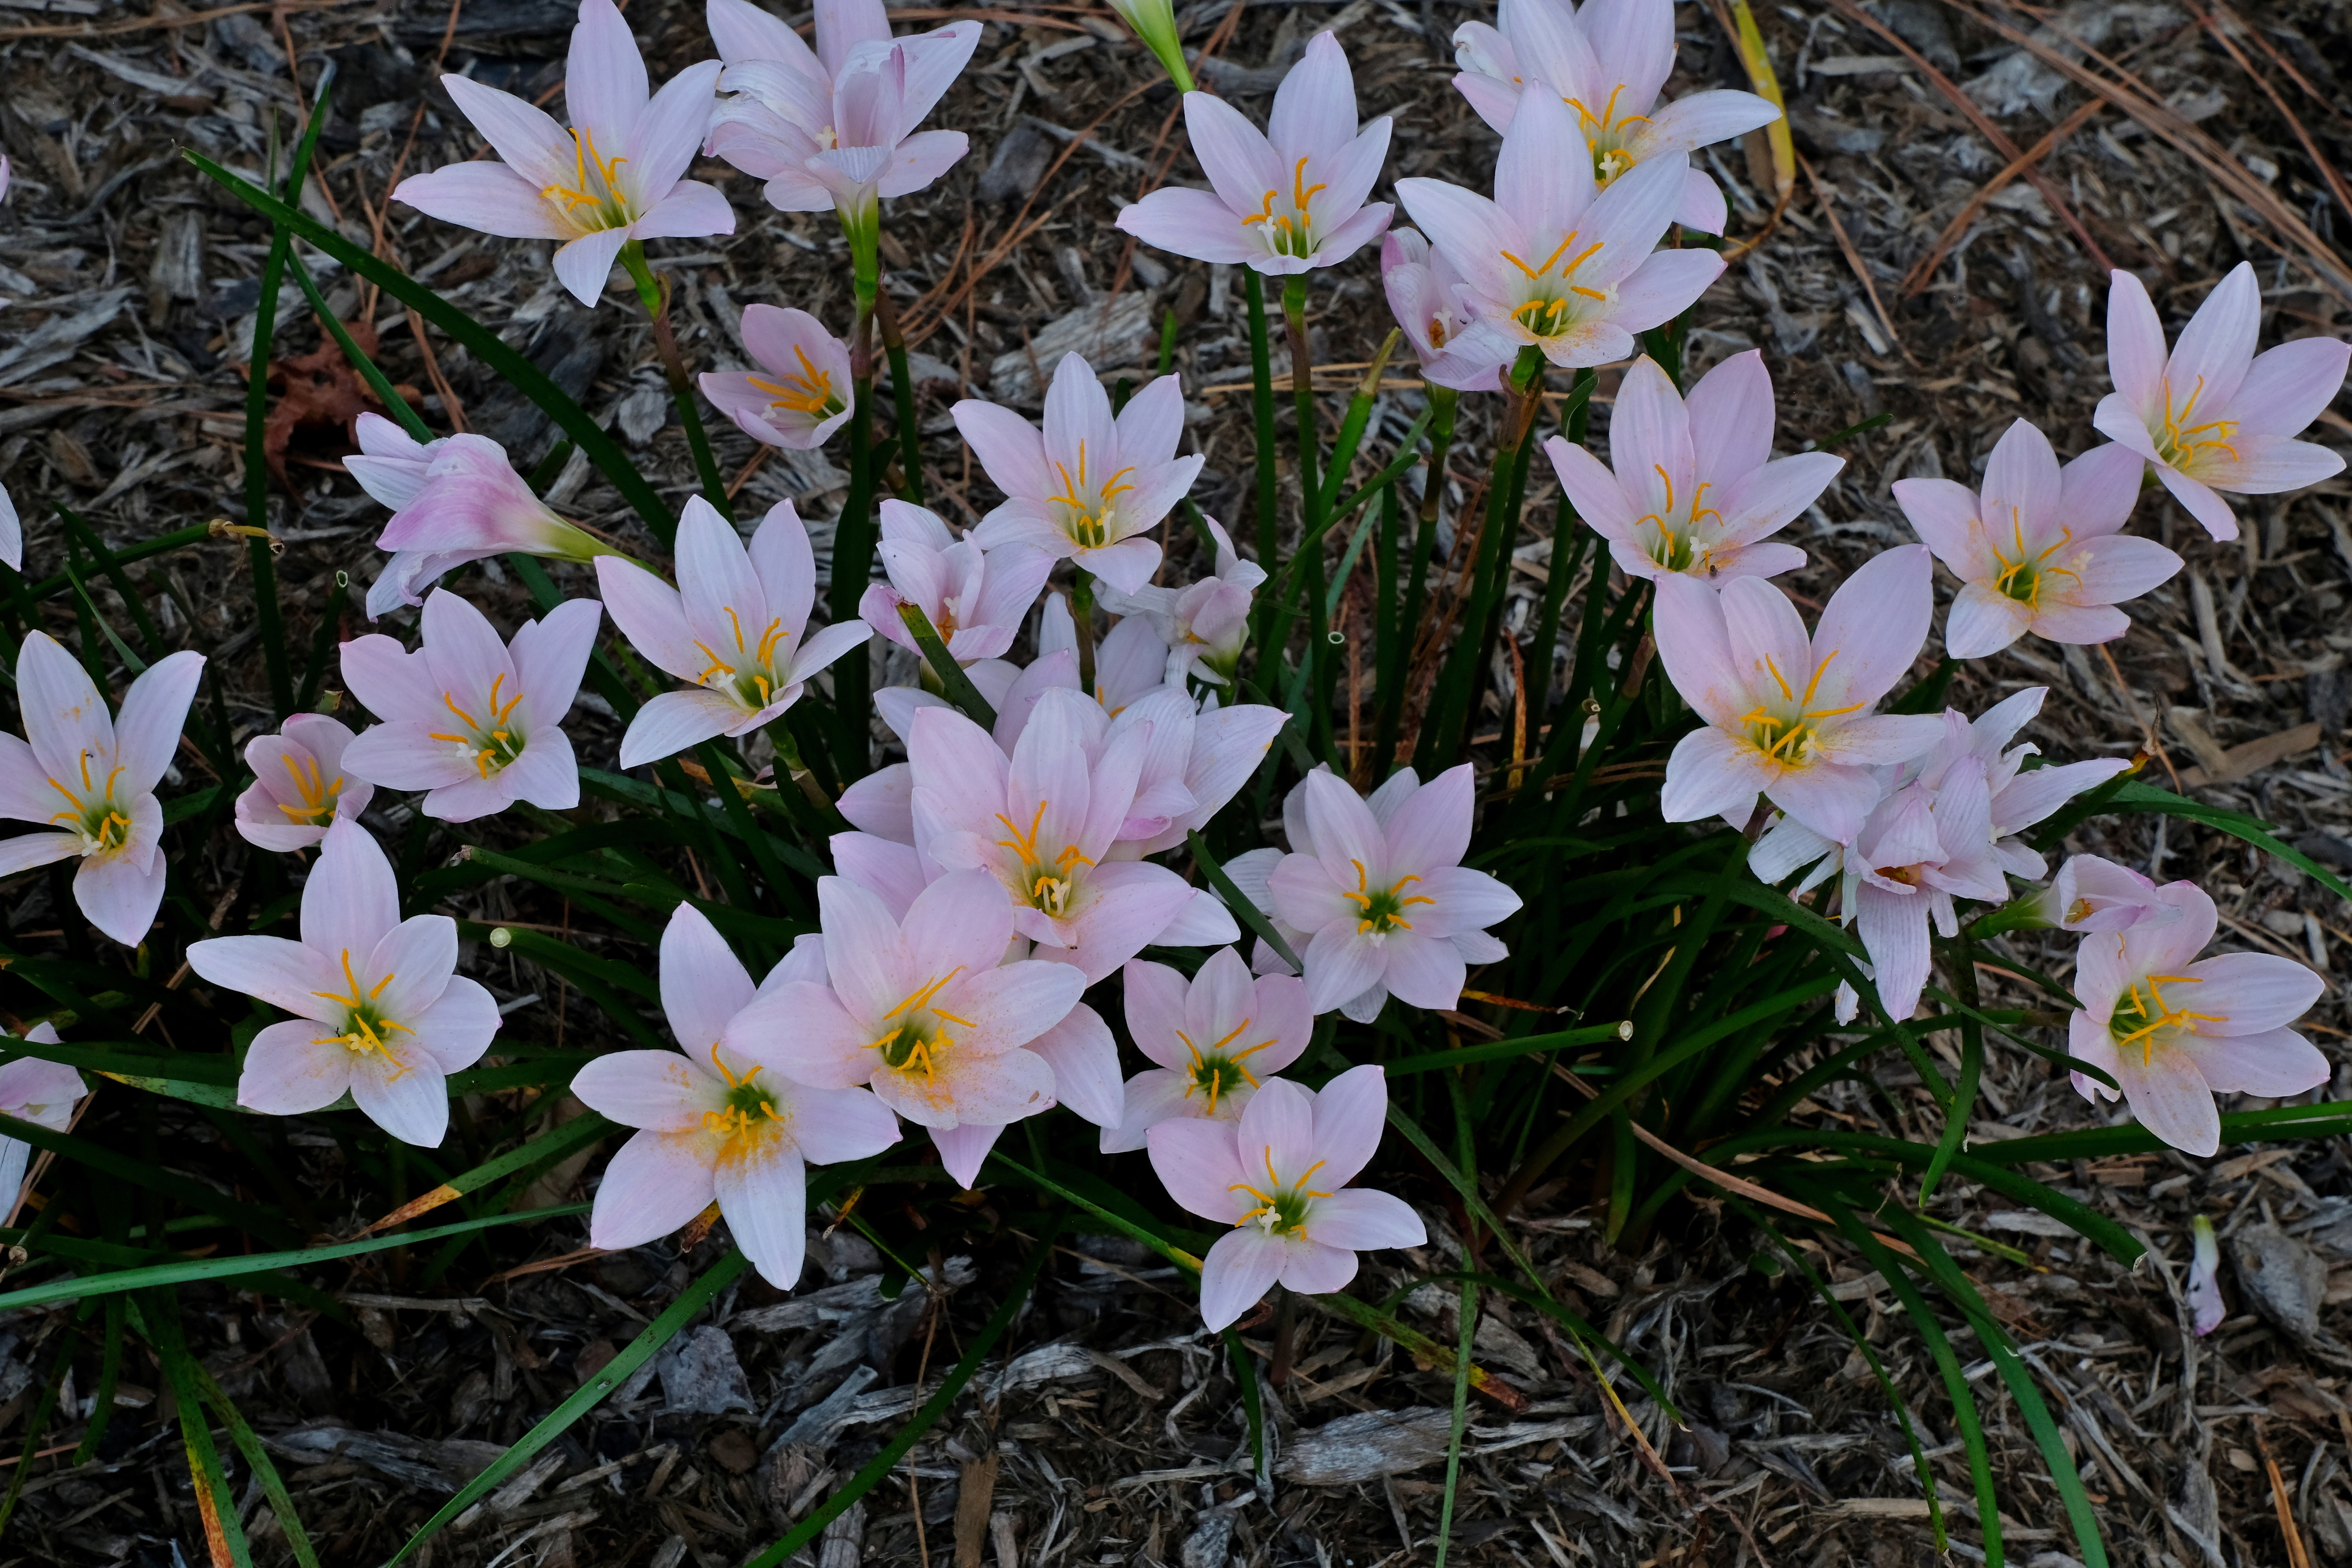 Zephyranthes 'Pink Out' @ JLBG - a previously un-named plant from the late John Fellers as P34III-2